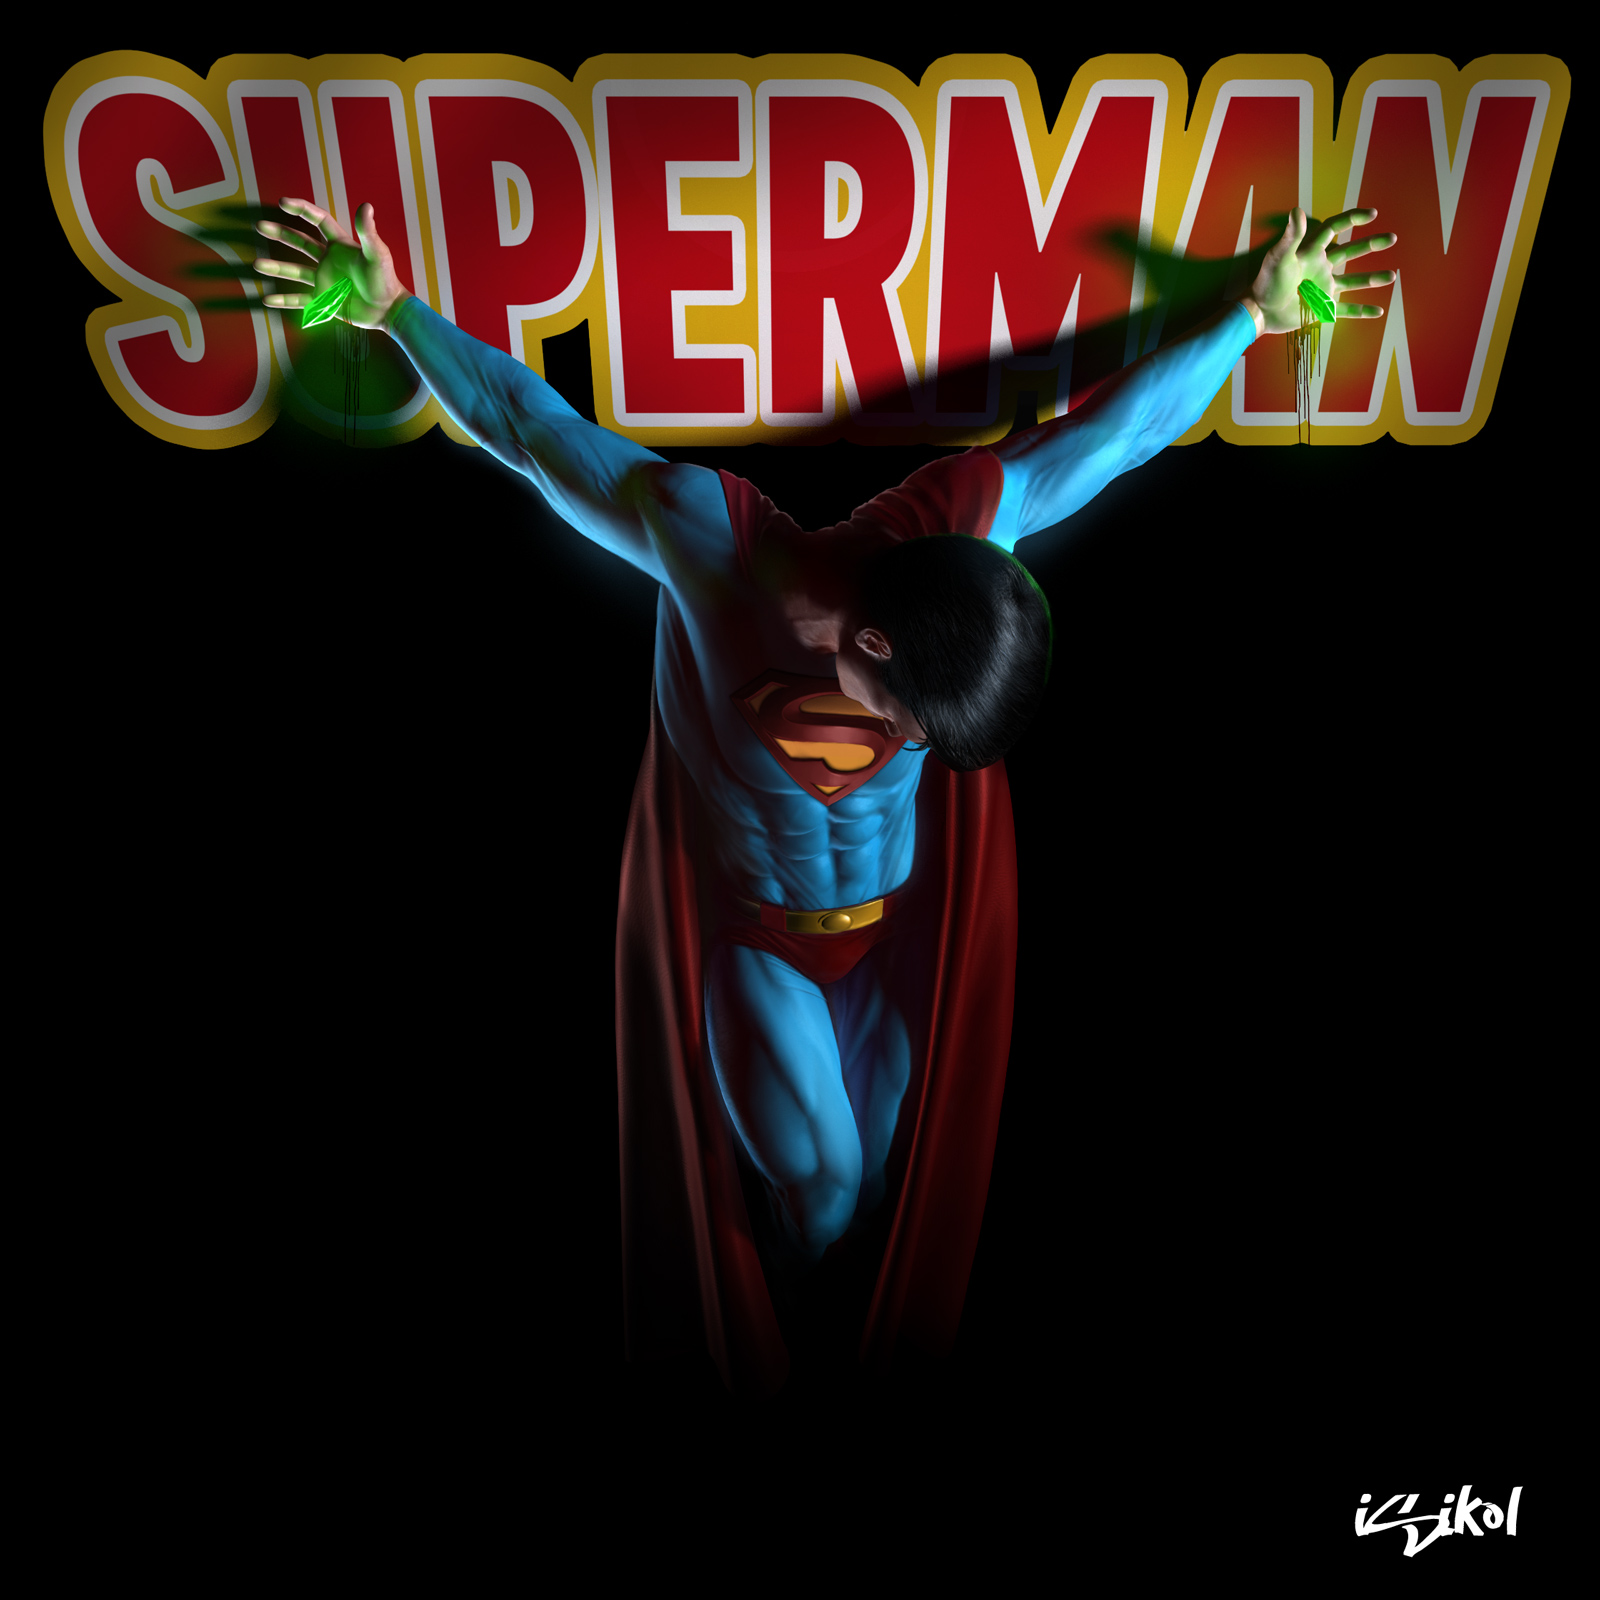 superman_crucifixion_by_isikol-d4cb517.jpg